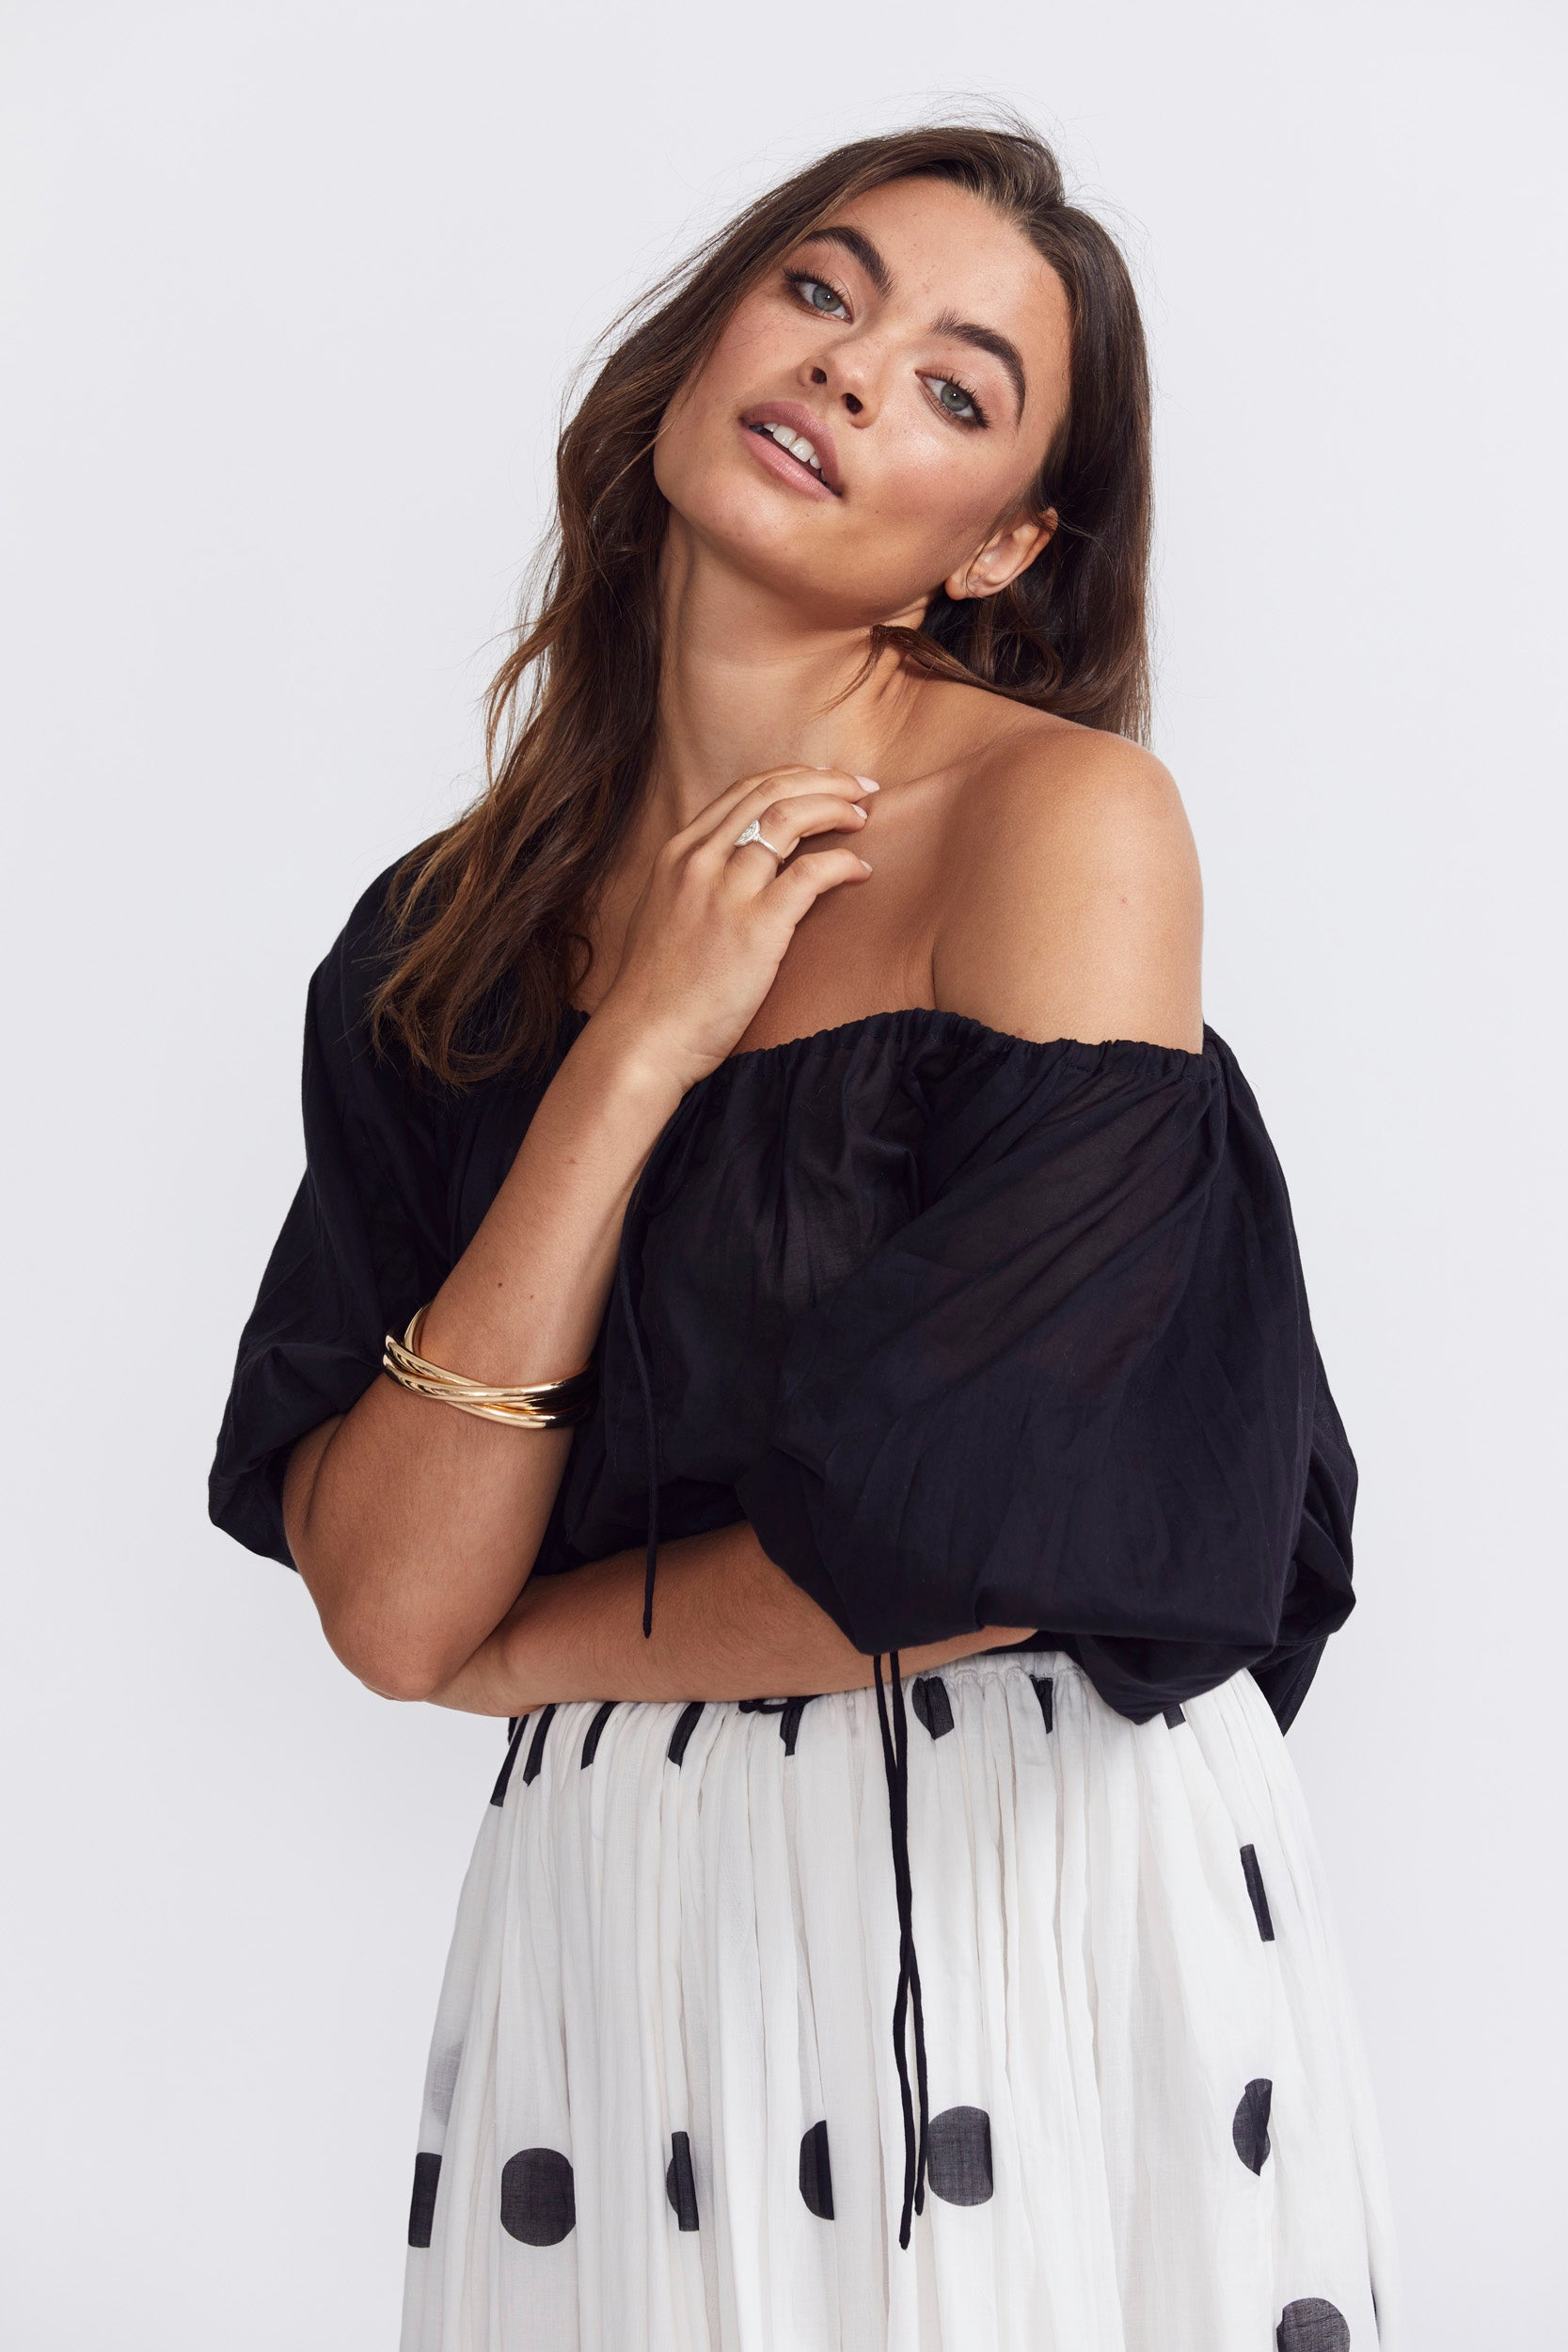 ÉSS THE LABEL LuLu Blouse - Black